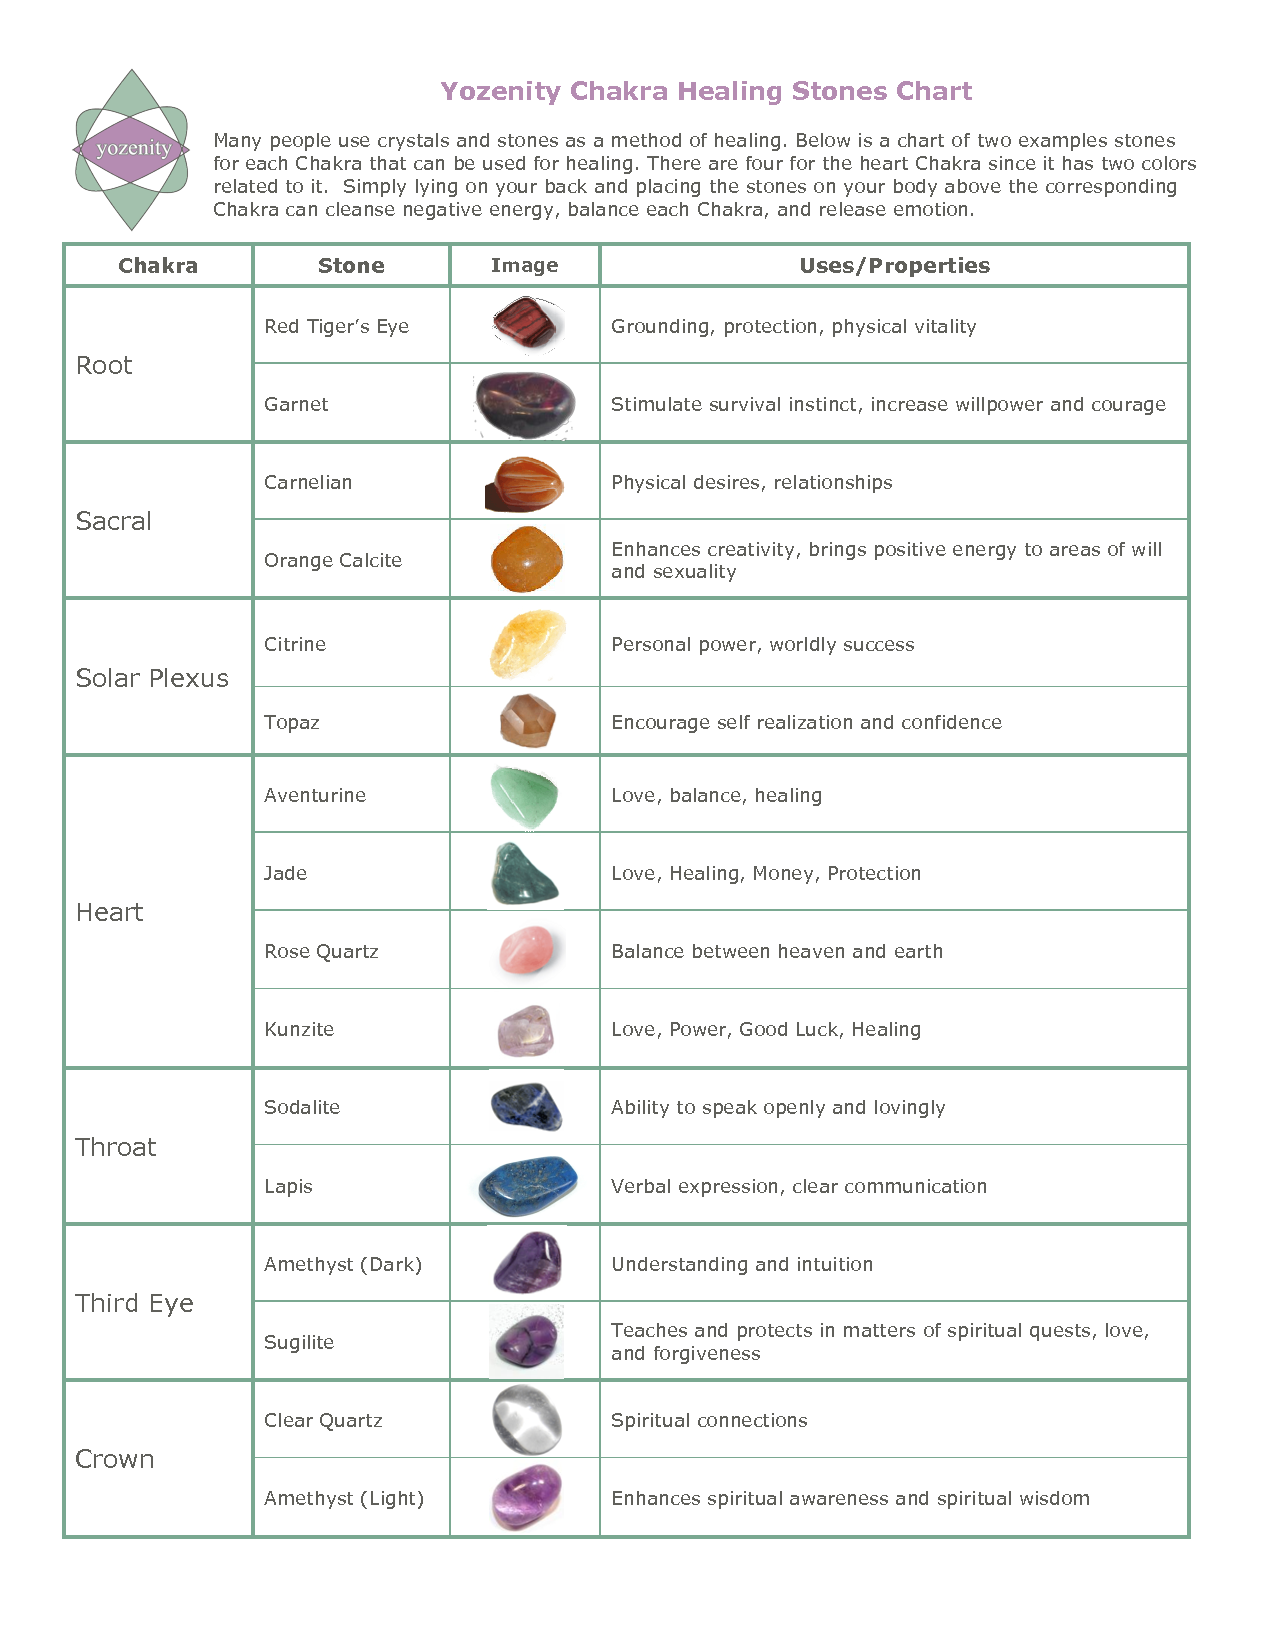 3539a359ec5a1b16166687c5cd0f4bc1 pictures of healing yozenity chakra healing stones chart root